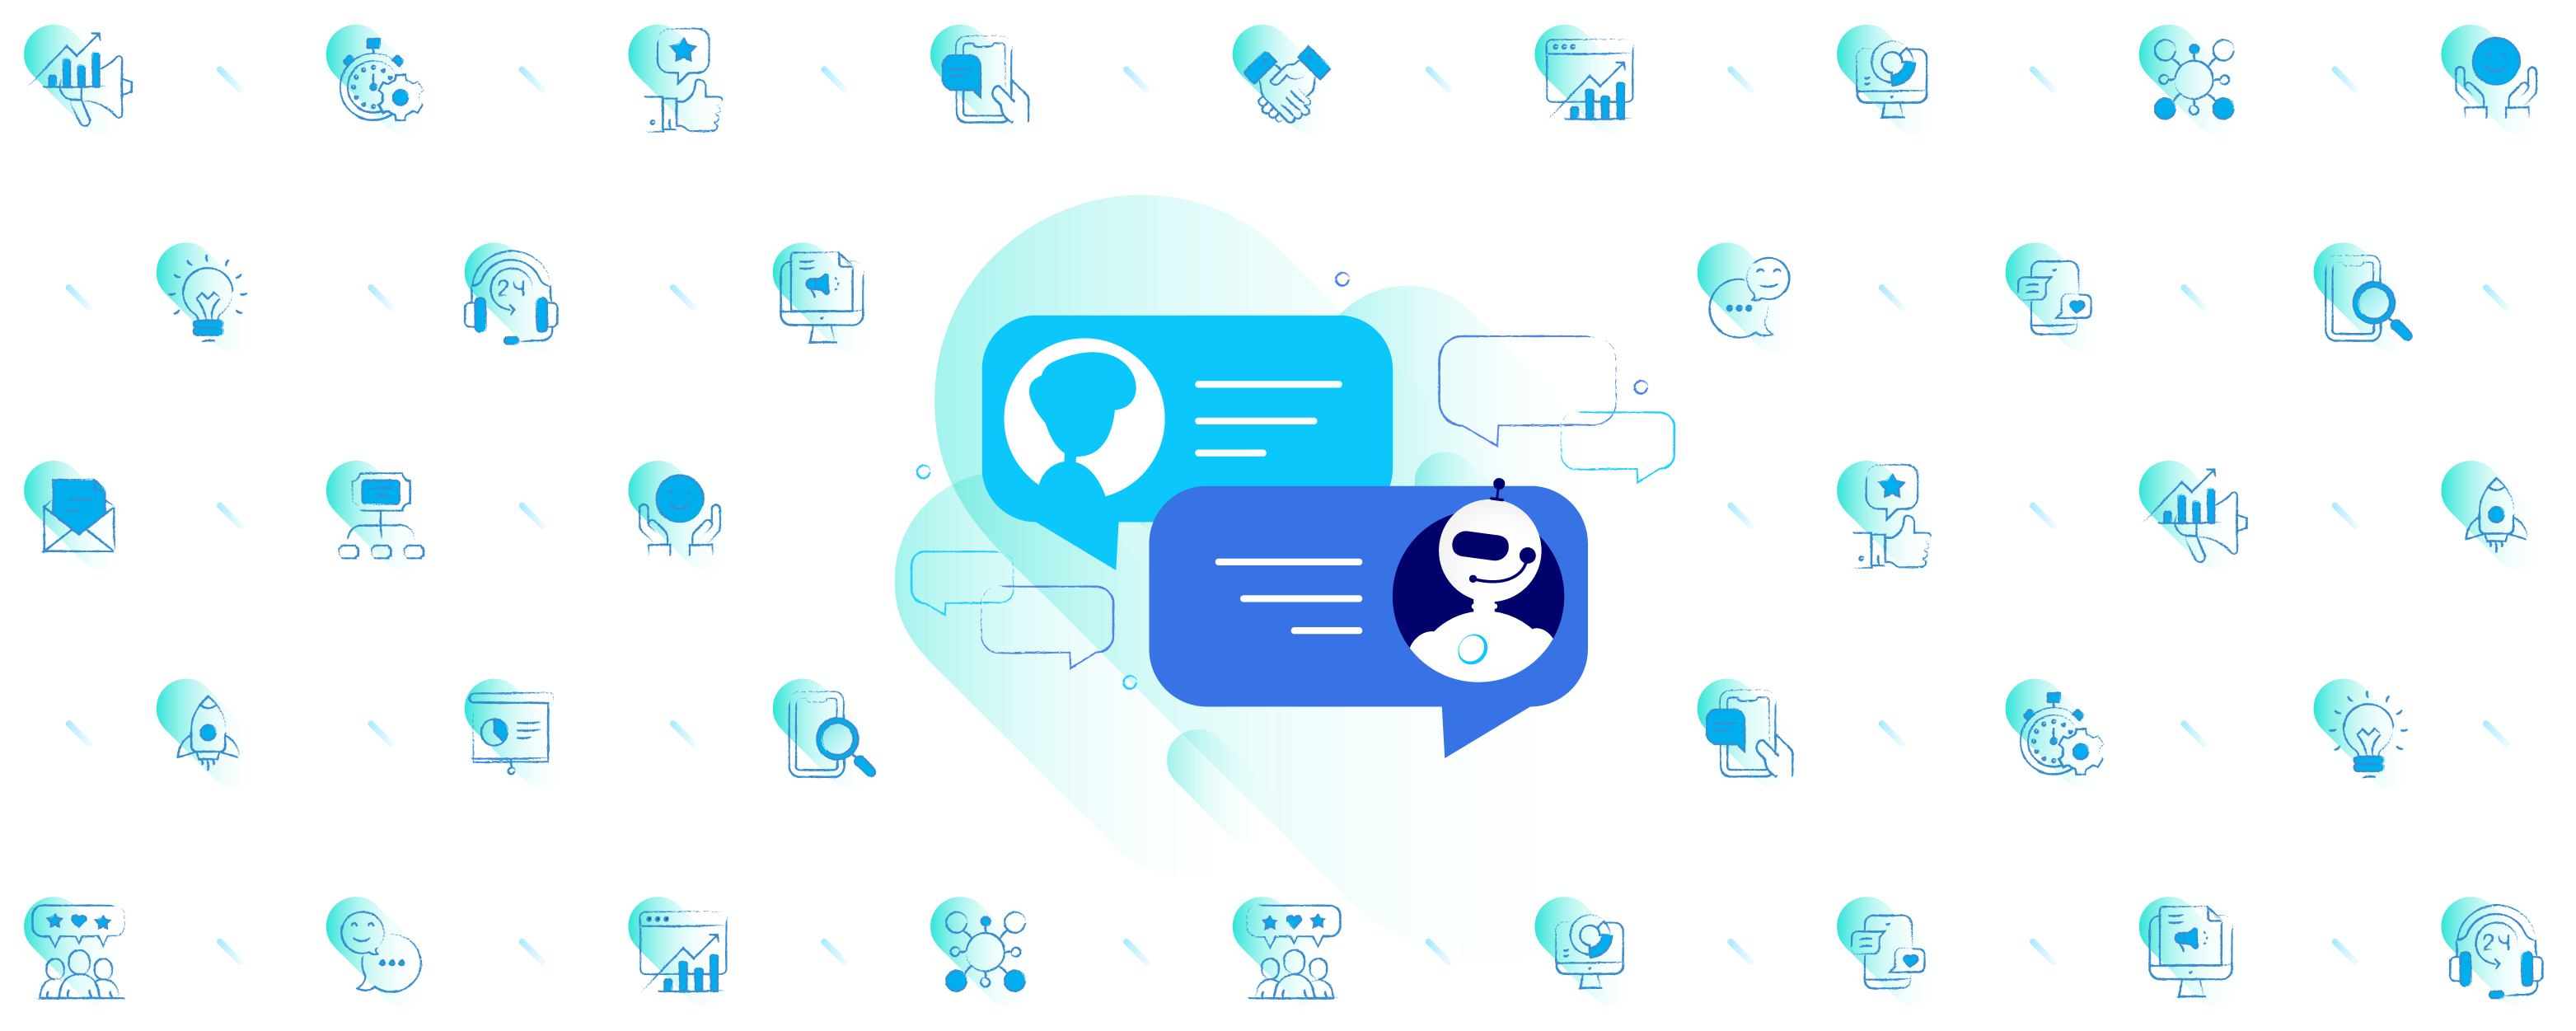 Chatbot uses for sales, marketing and customer service